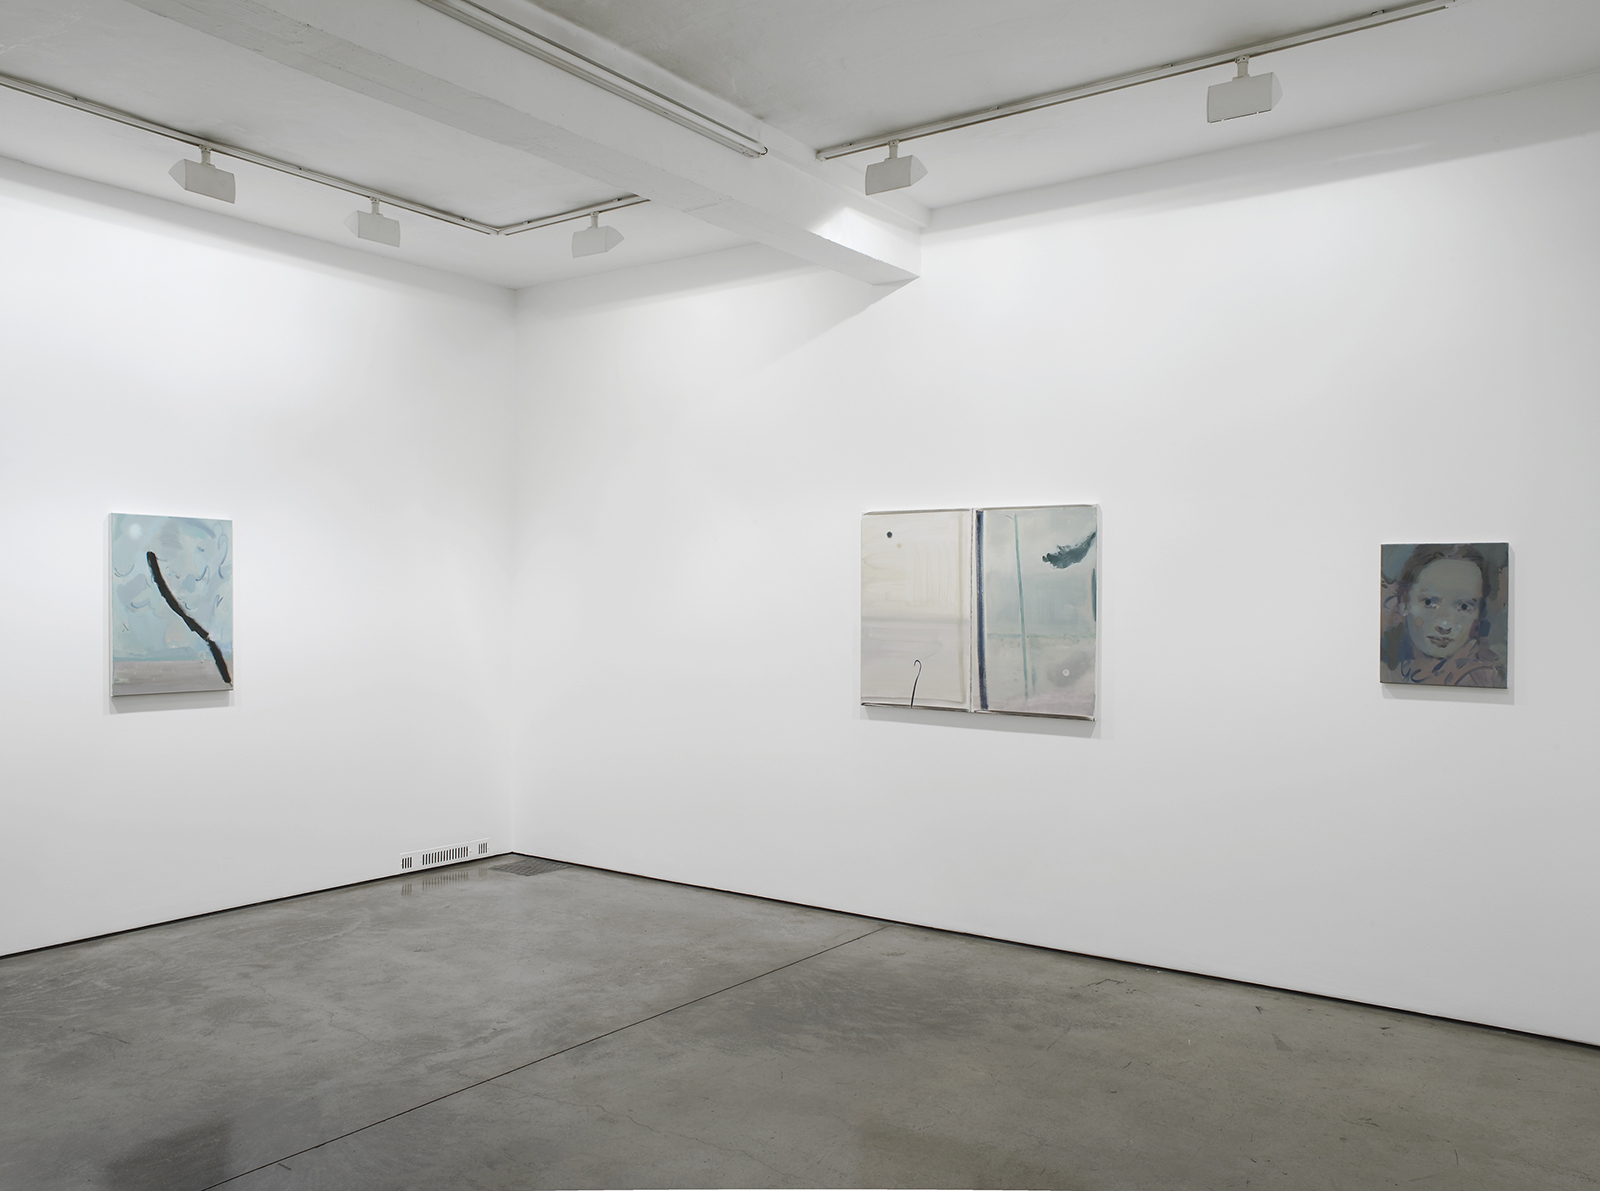 8 - Kaye Donachie at Maureen Paley - 4.02.2014